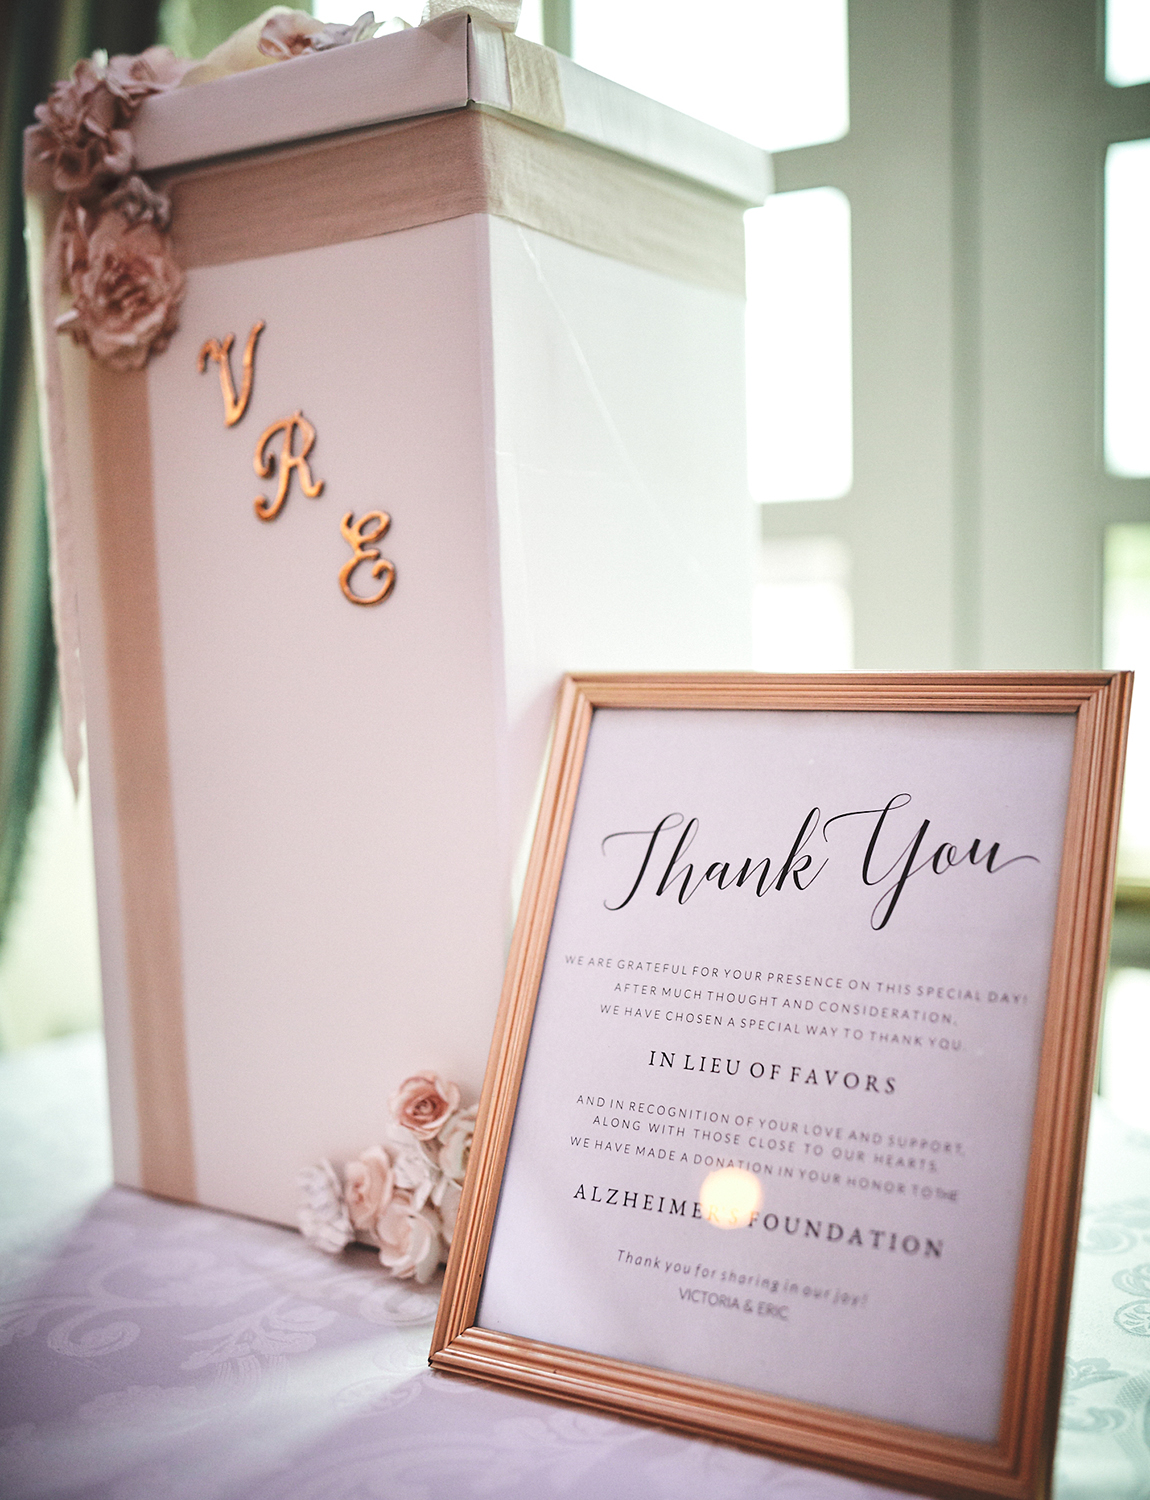 180519_PalaceatSomersetParkWeddingPhotography_NJWeddingPhotographer_By_BriJohnsonWeddings_0131.jpg